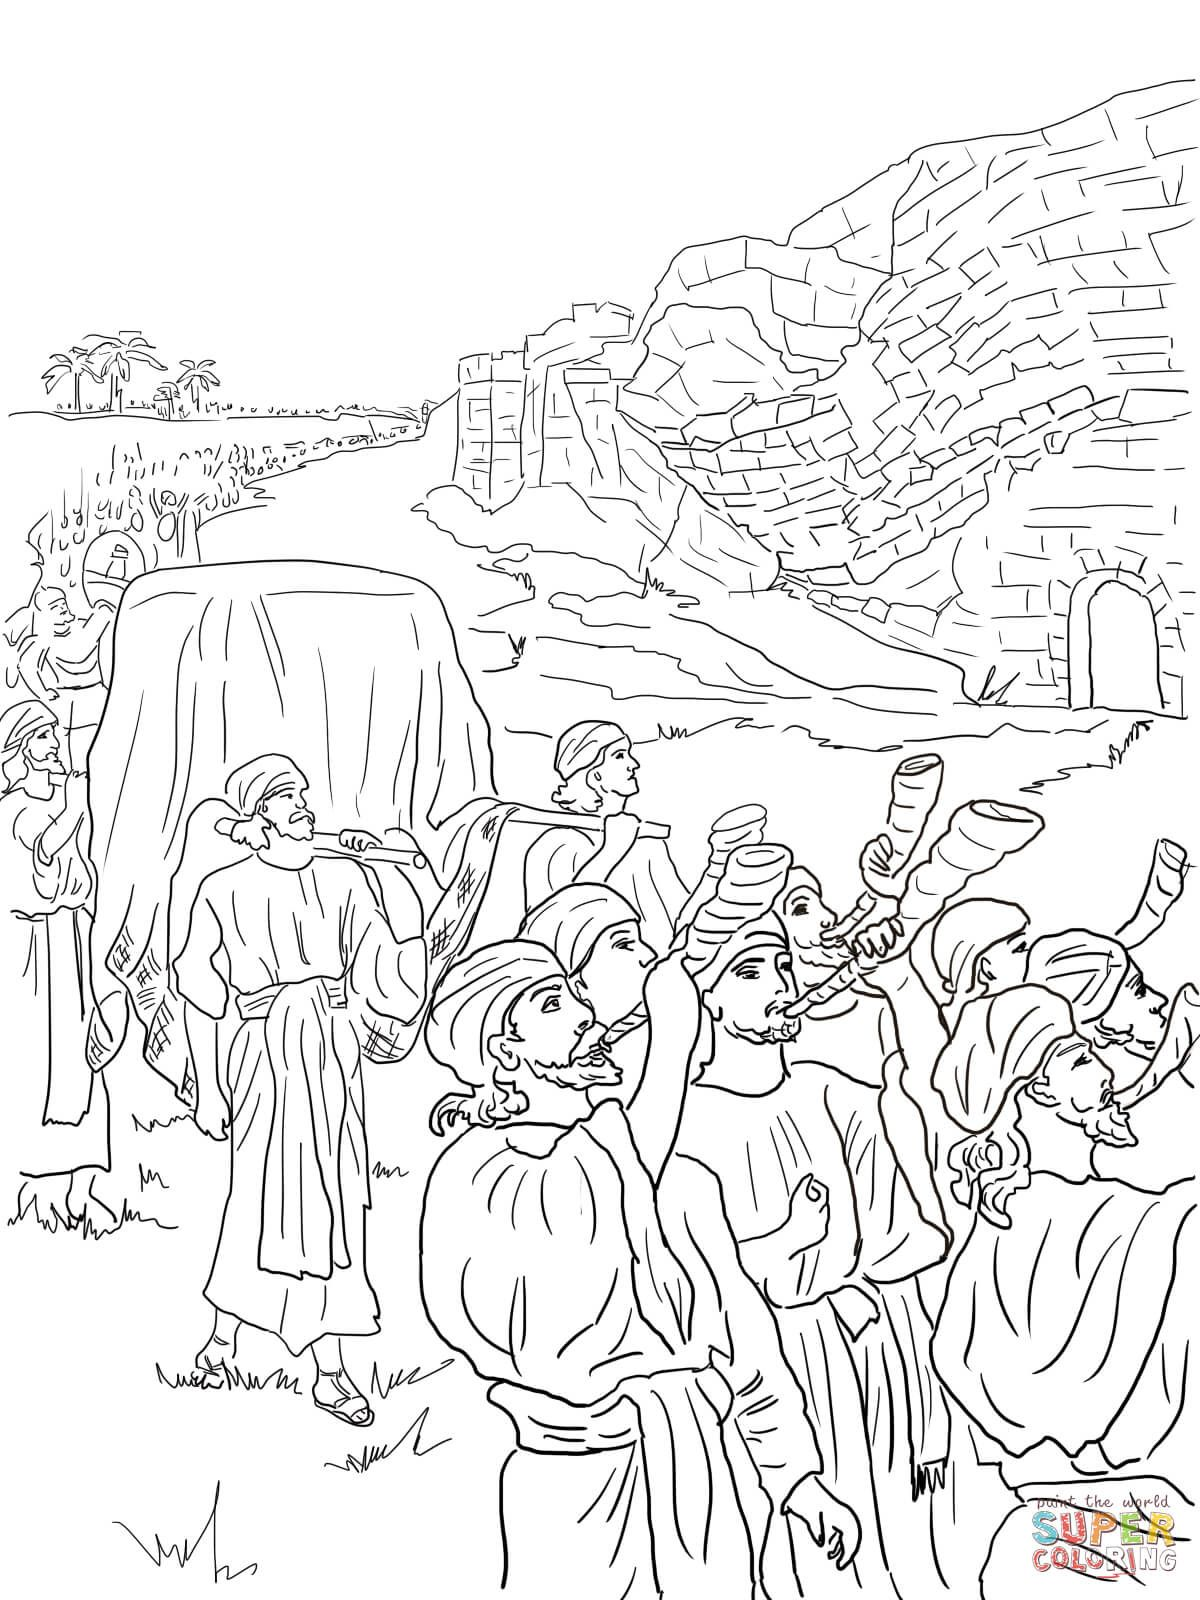 Walls Of Jericho Colo S Coloring Page Of Joshua